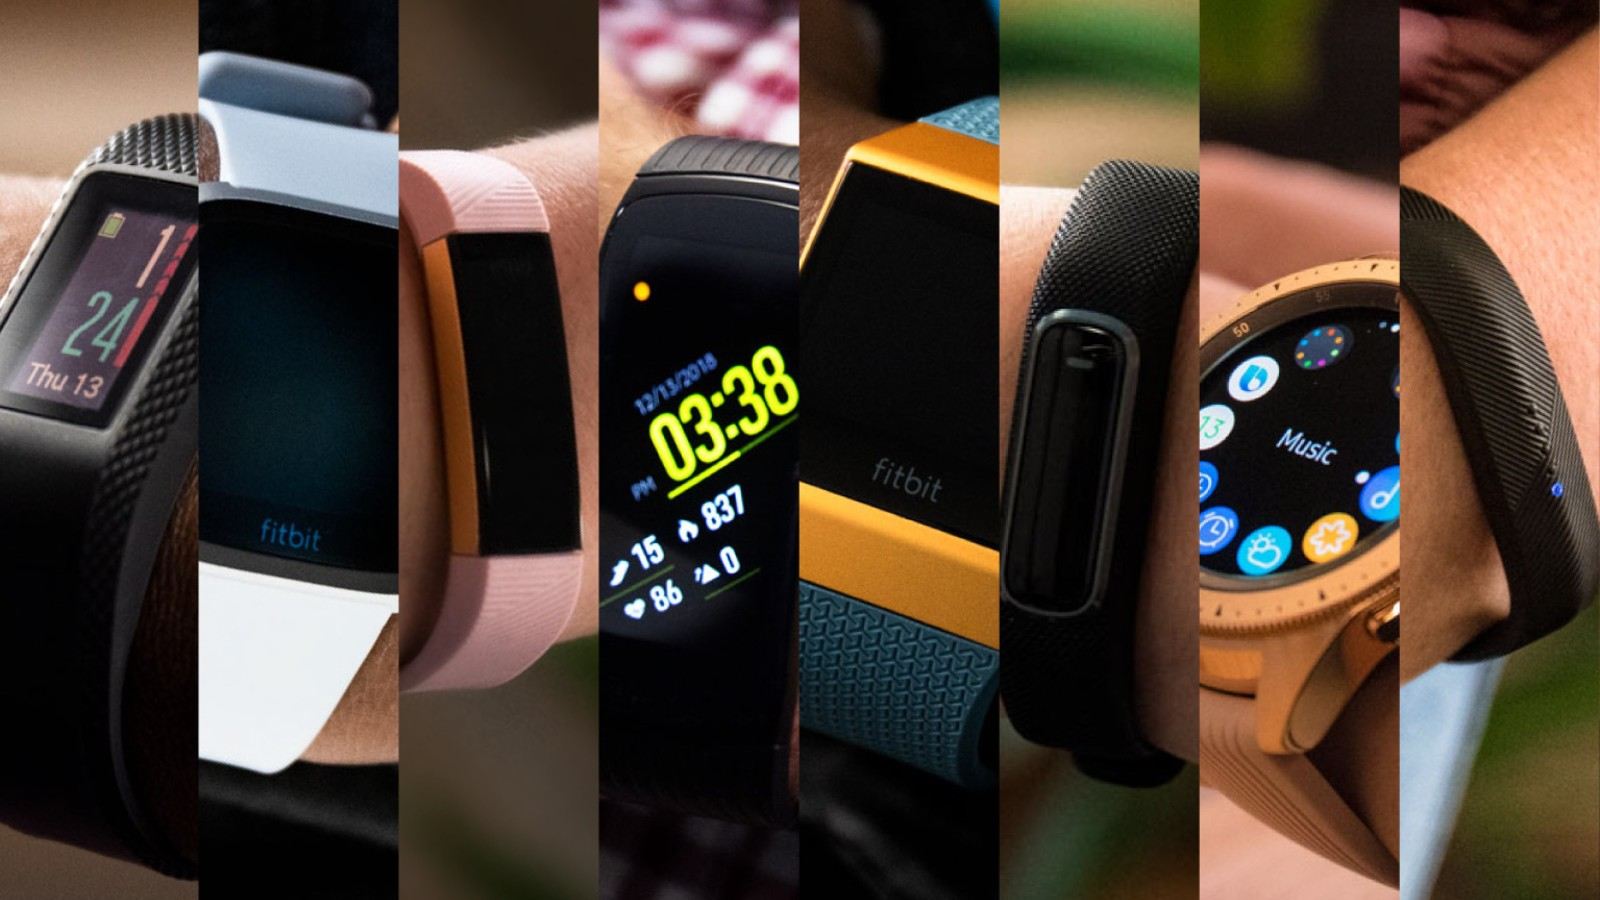 Best Fitness Trackers 2019 10 of the best fitness trackers to buy 2019   Top To Find